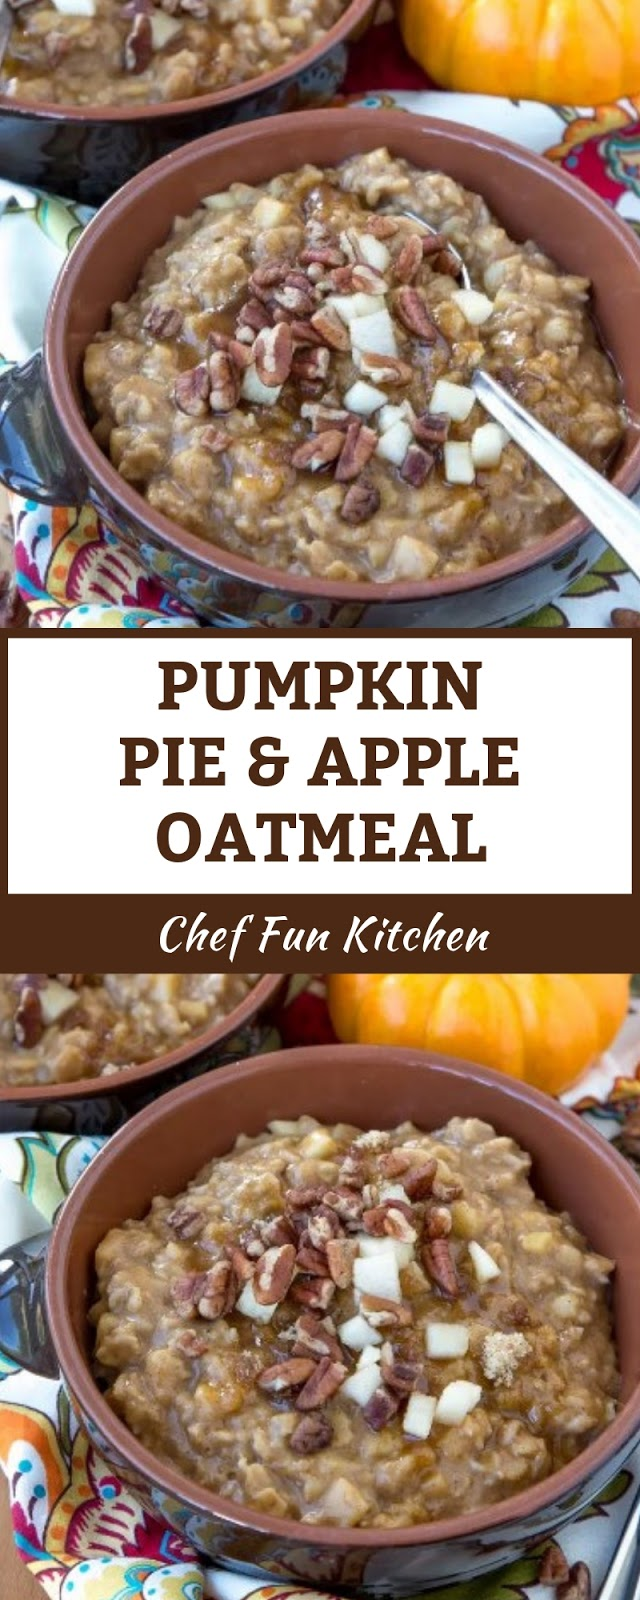 PUMPKIN PIE & APPLE OATMEAL